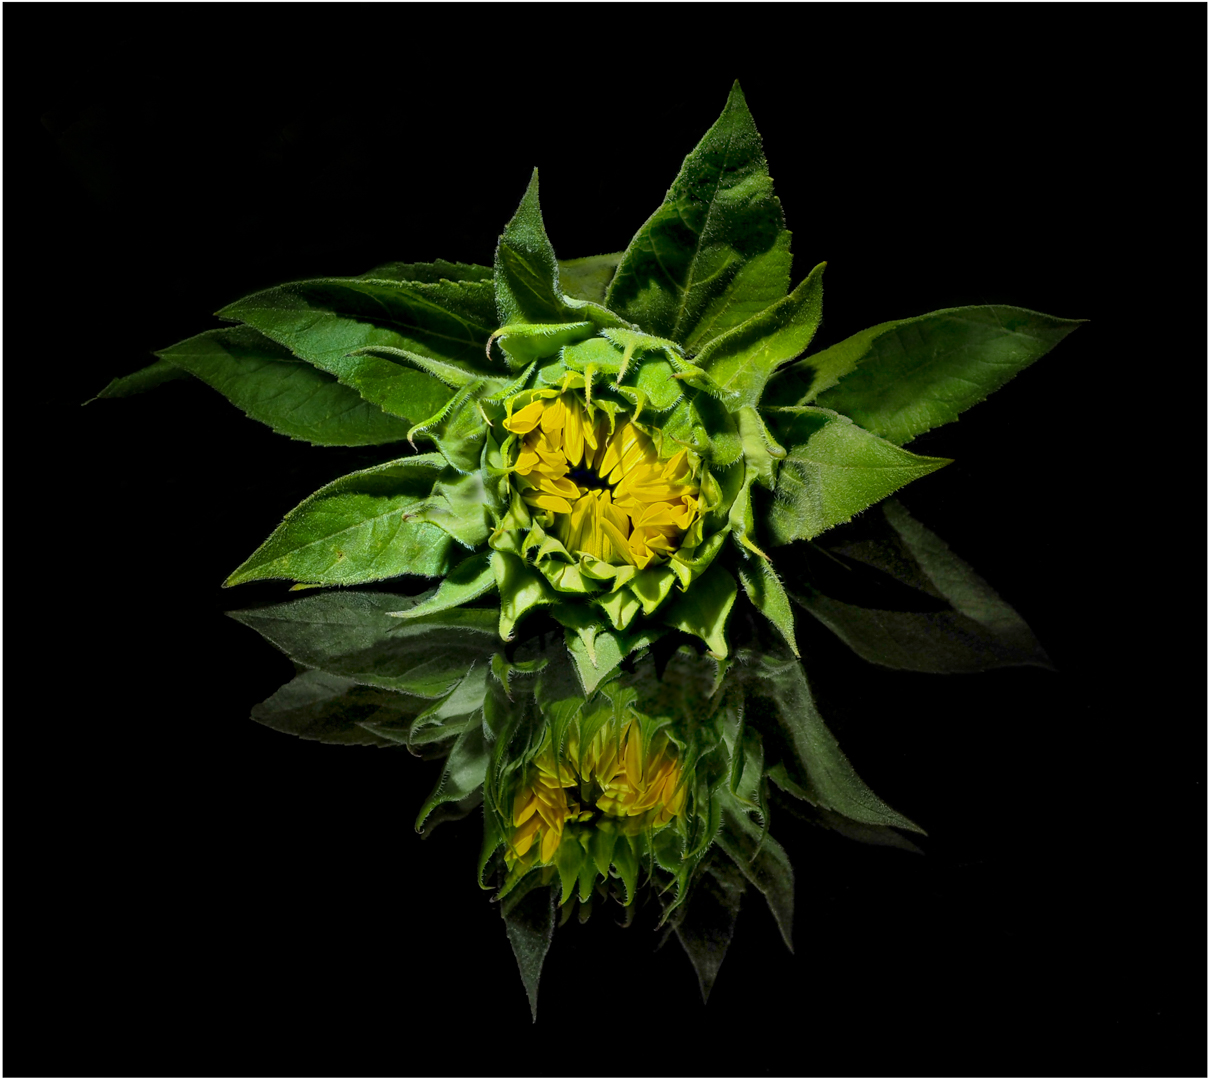 Sunflower Reflection_Paul Anderson